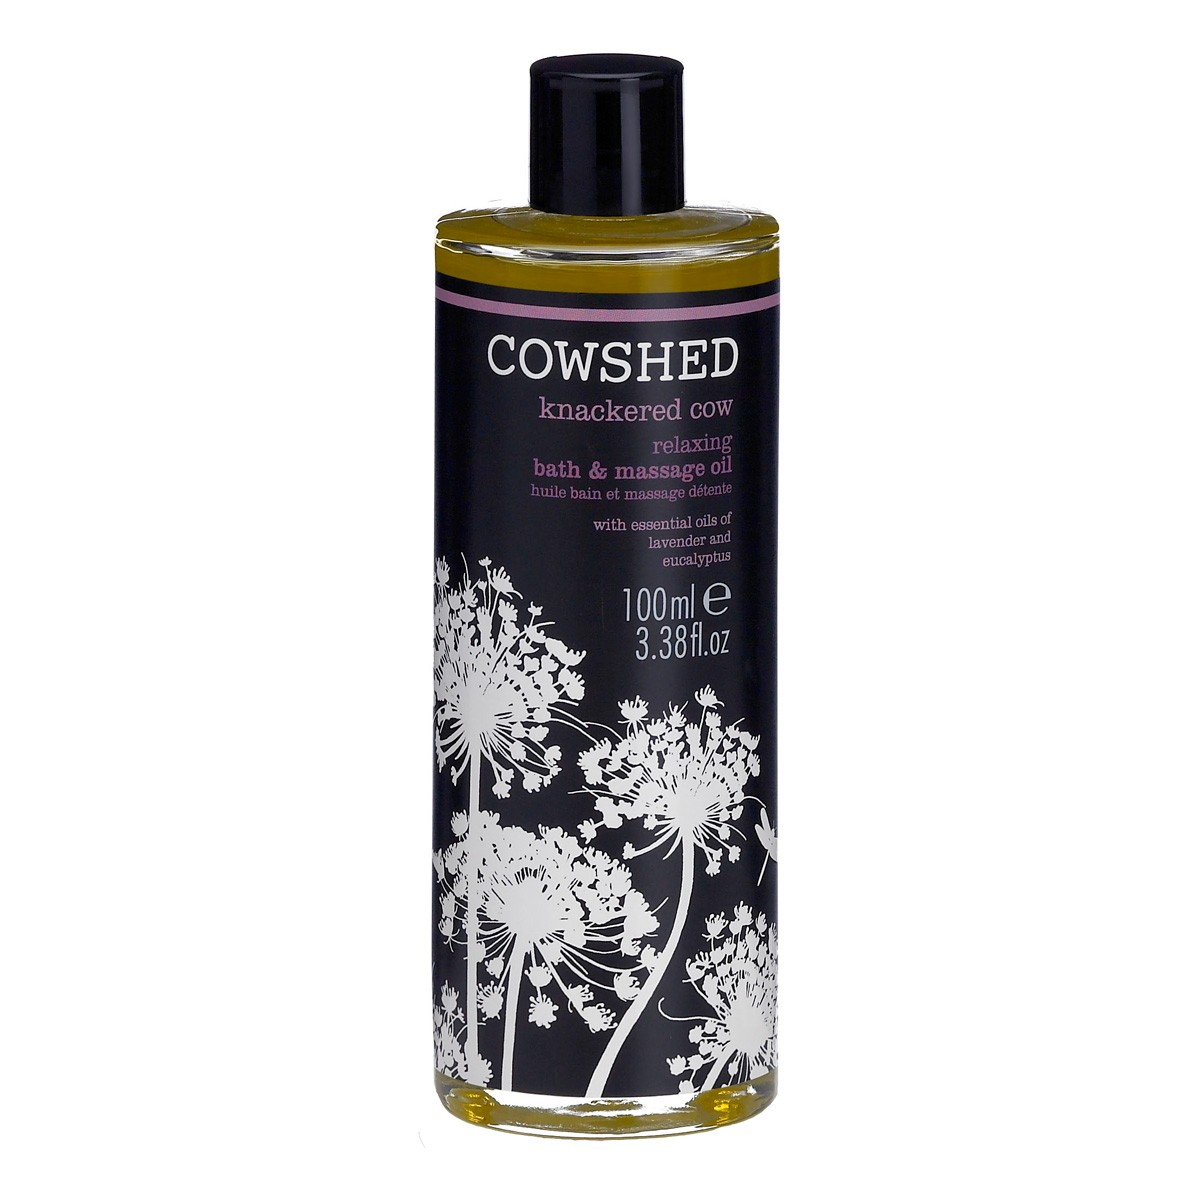 Cowshed Knackered Cow Relaxing Bath & Massage Oil